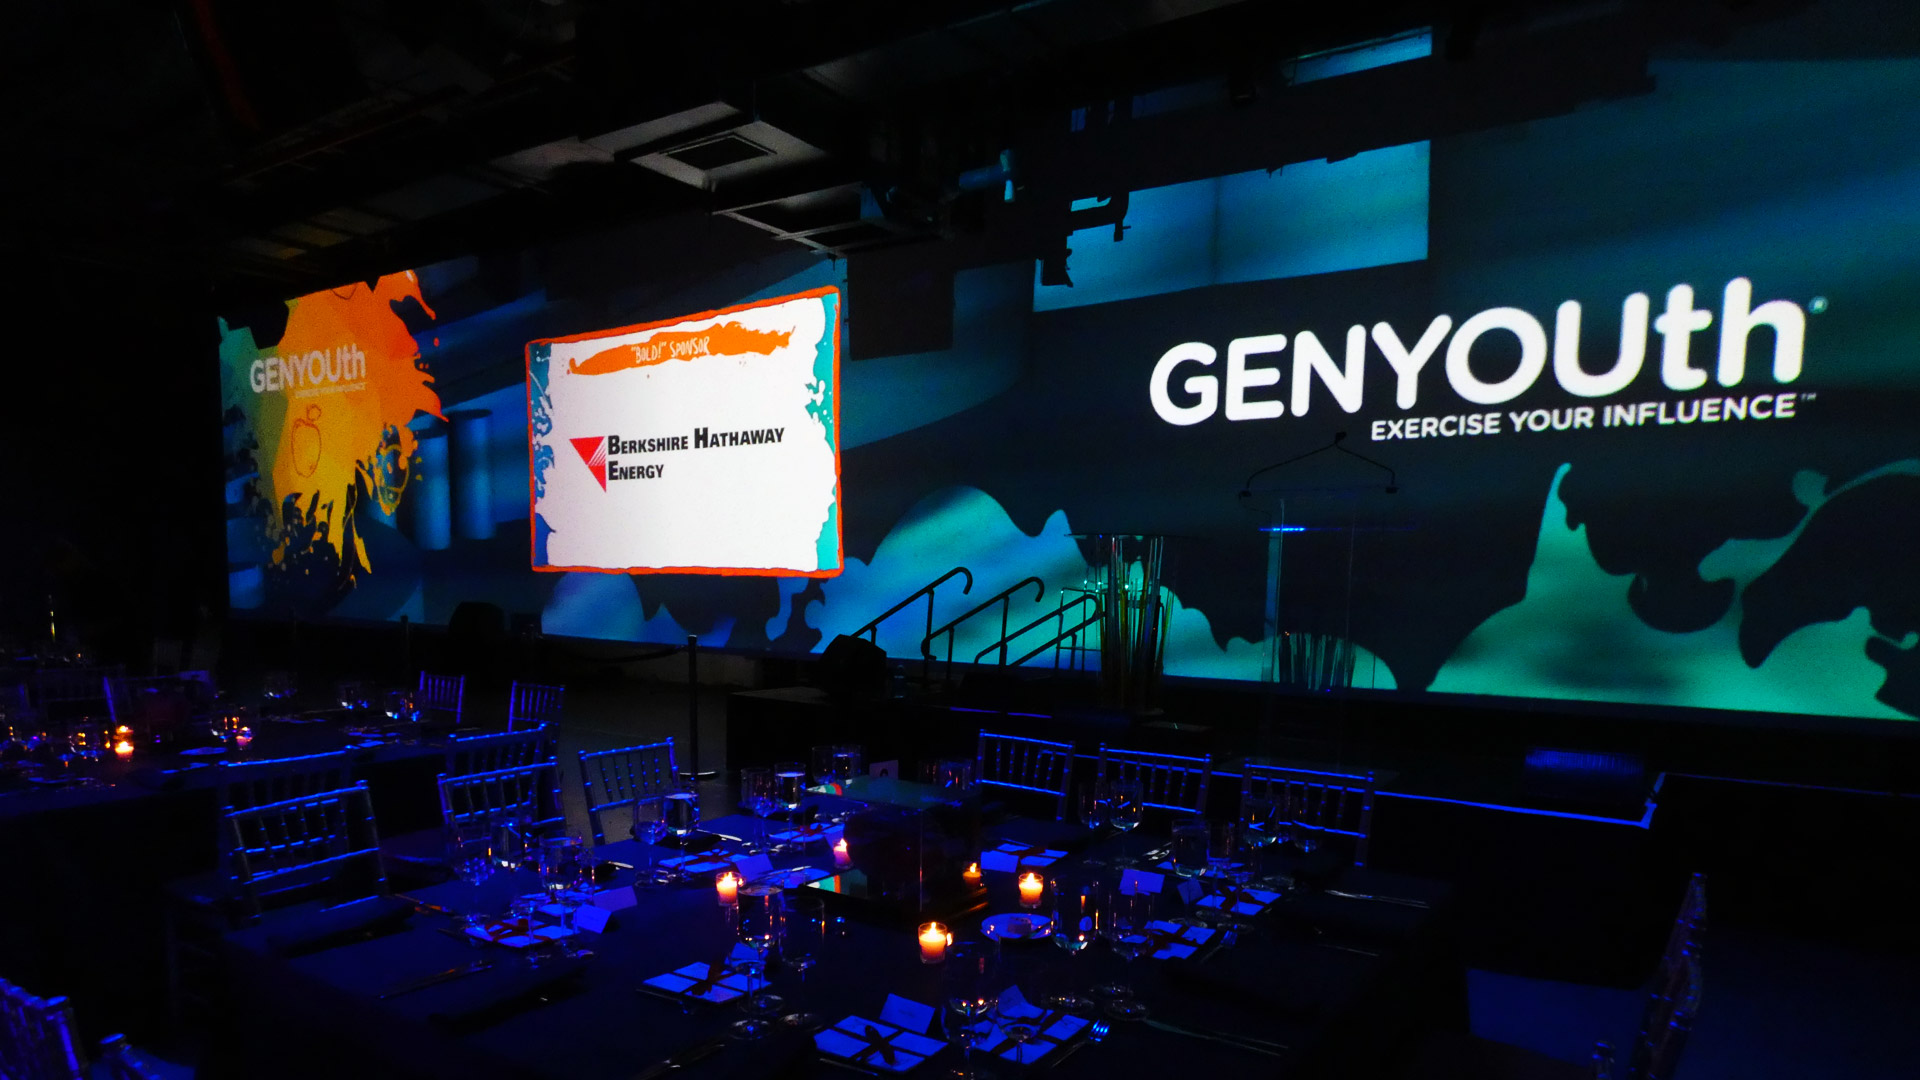 Projection mapping backdrop graphics